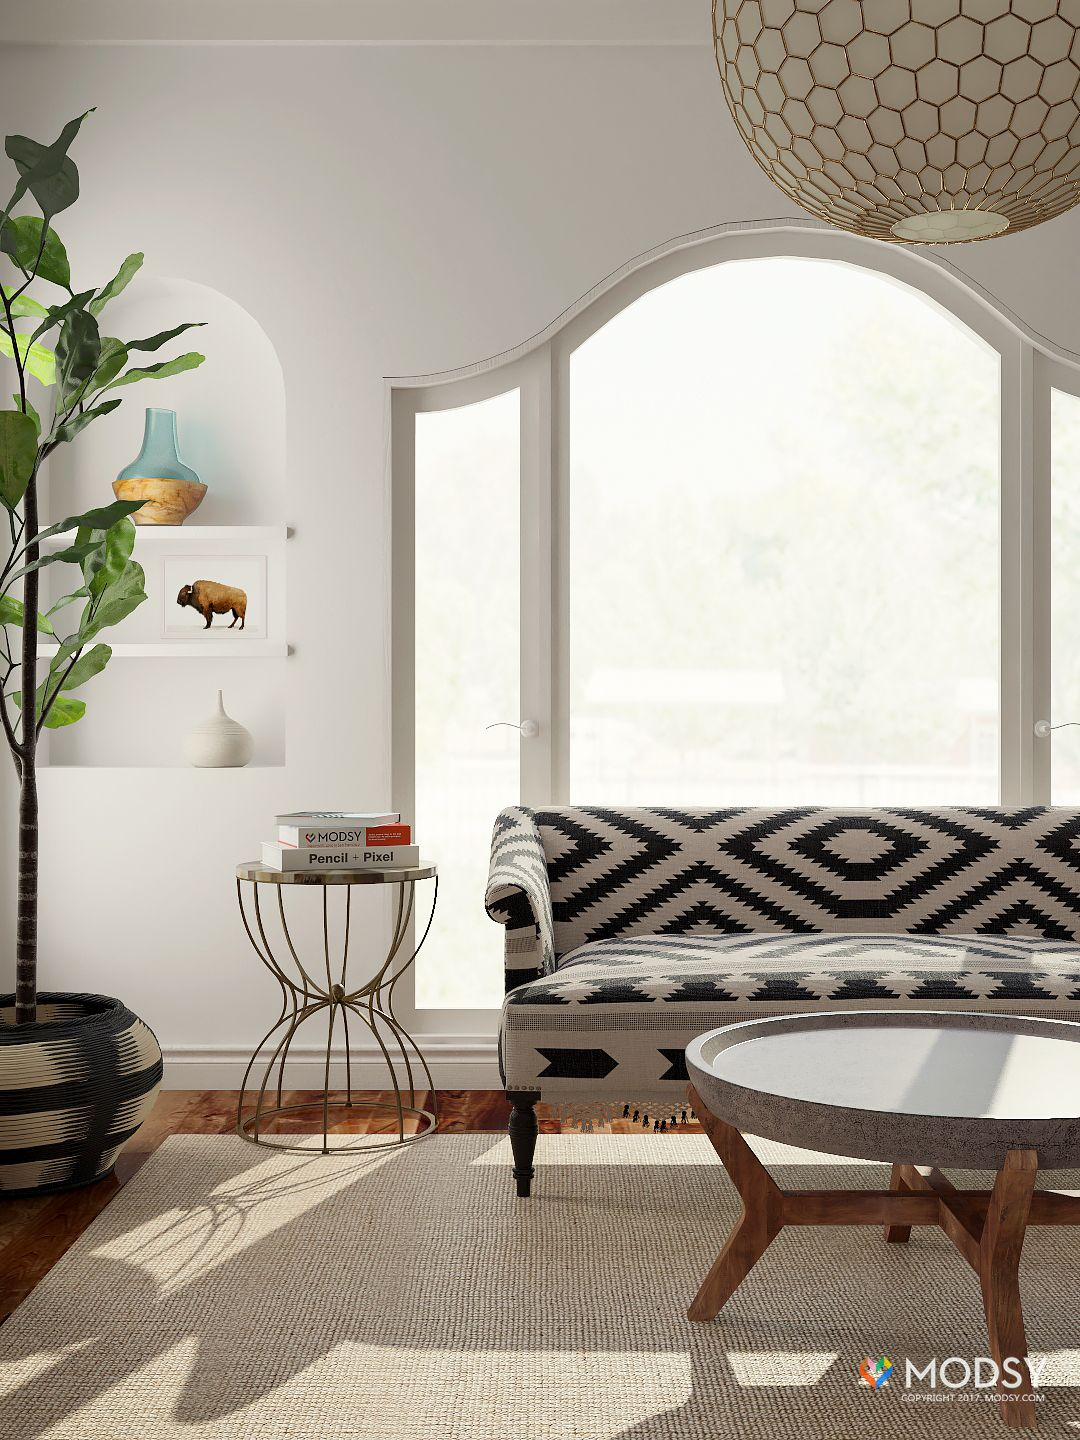 Minimal Bohemian Living Room: A natural and eclectic living space ...